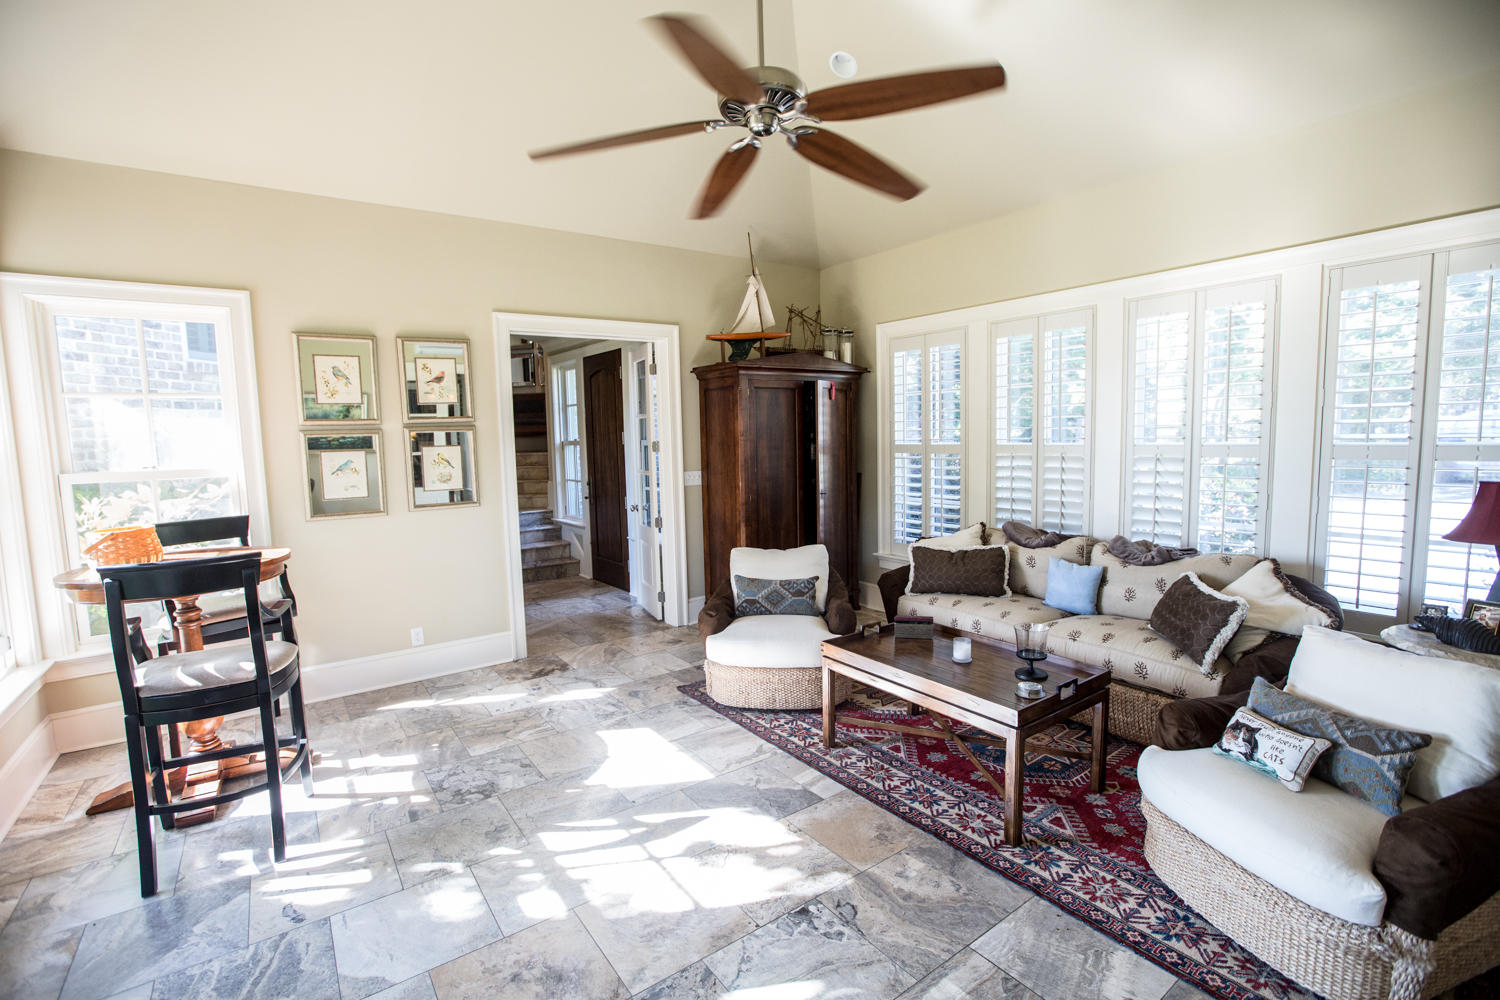 Edgewater Park Homes For Sale - 120 Edgewater, Charleston, SC - 28